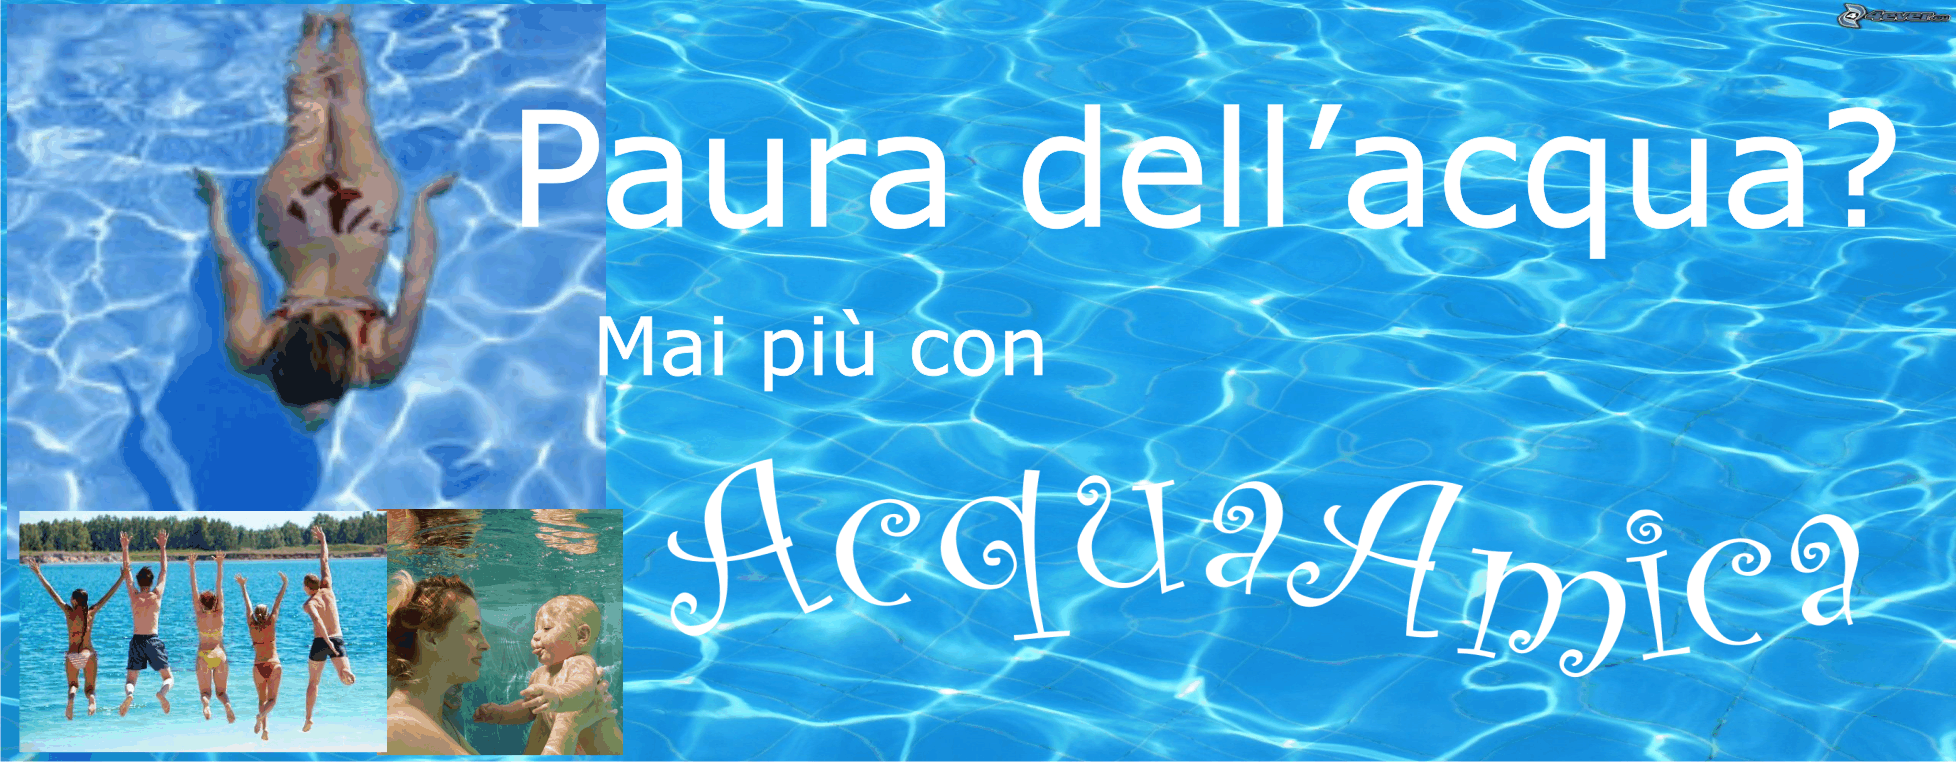 Paura dell'acqua - AcquaAmica.it